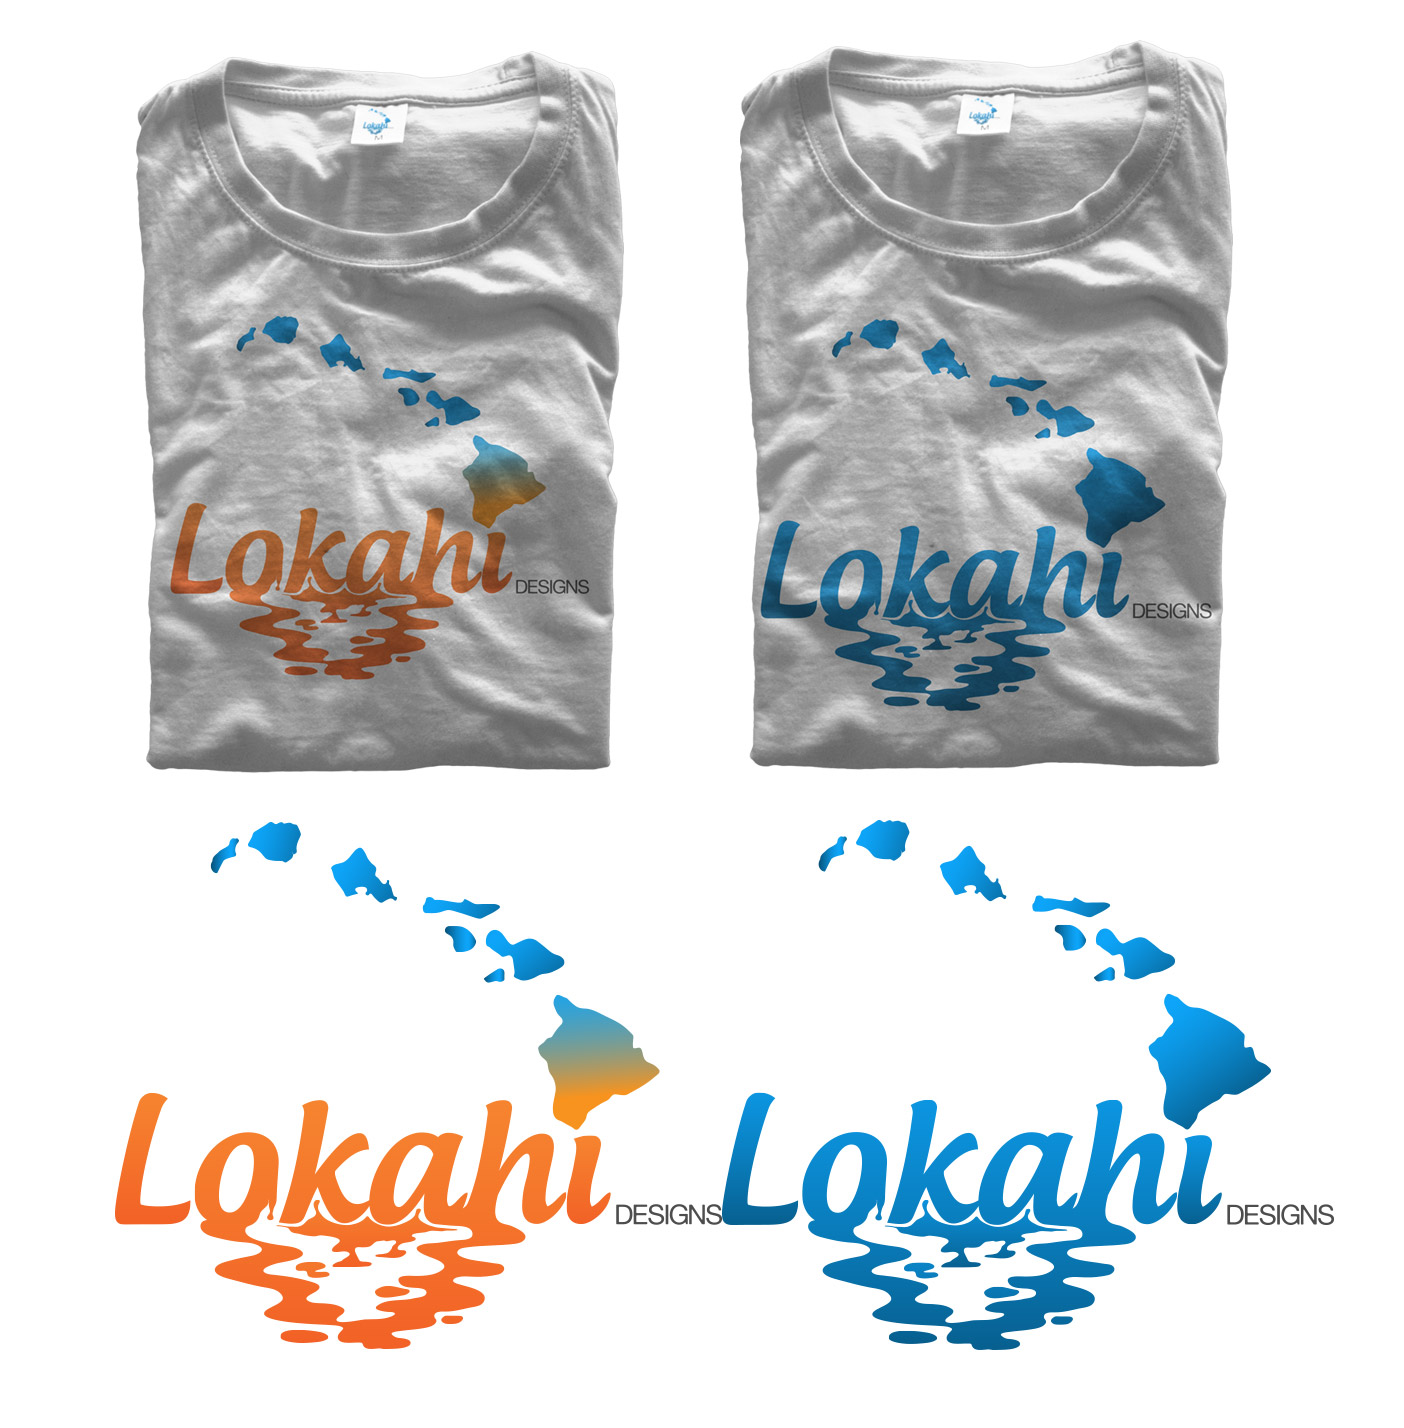 Logo Design by olii - Entry No. 41 in the Logo Design Contest Unique Logo Design Wanted for Lokahi Designs.